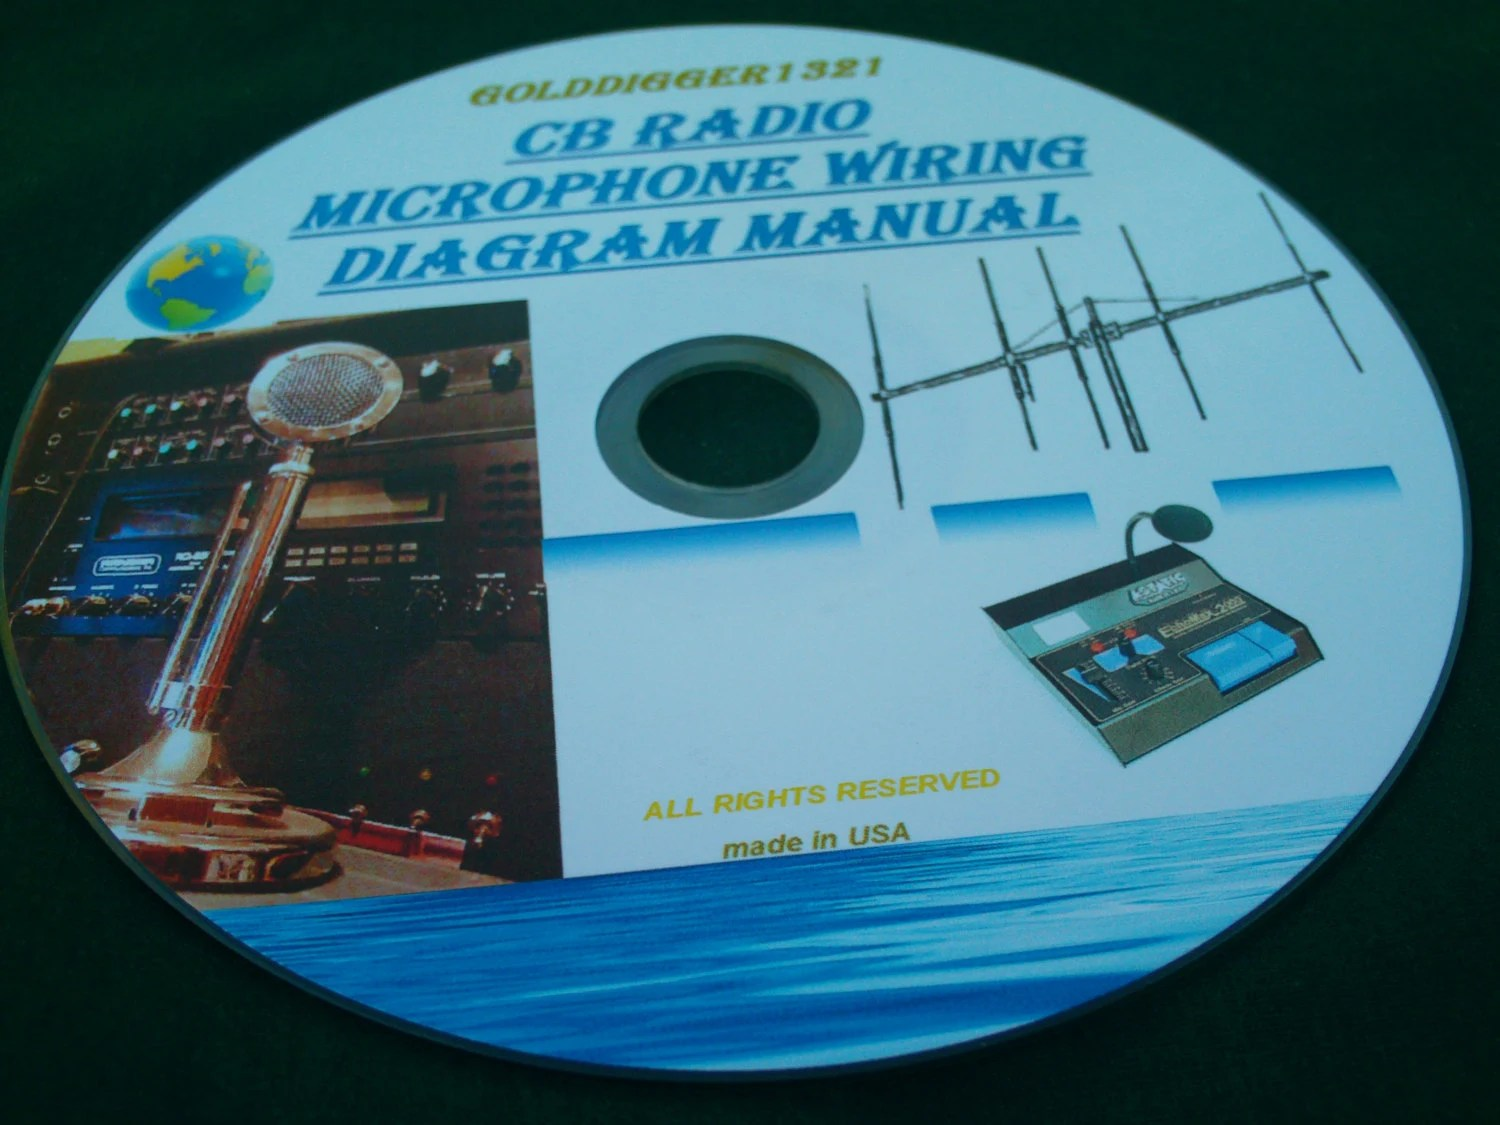 hight resolution of cb radio microphone wiring diagram manual on cd zeppy io